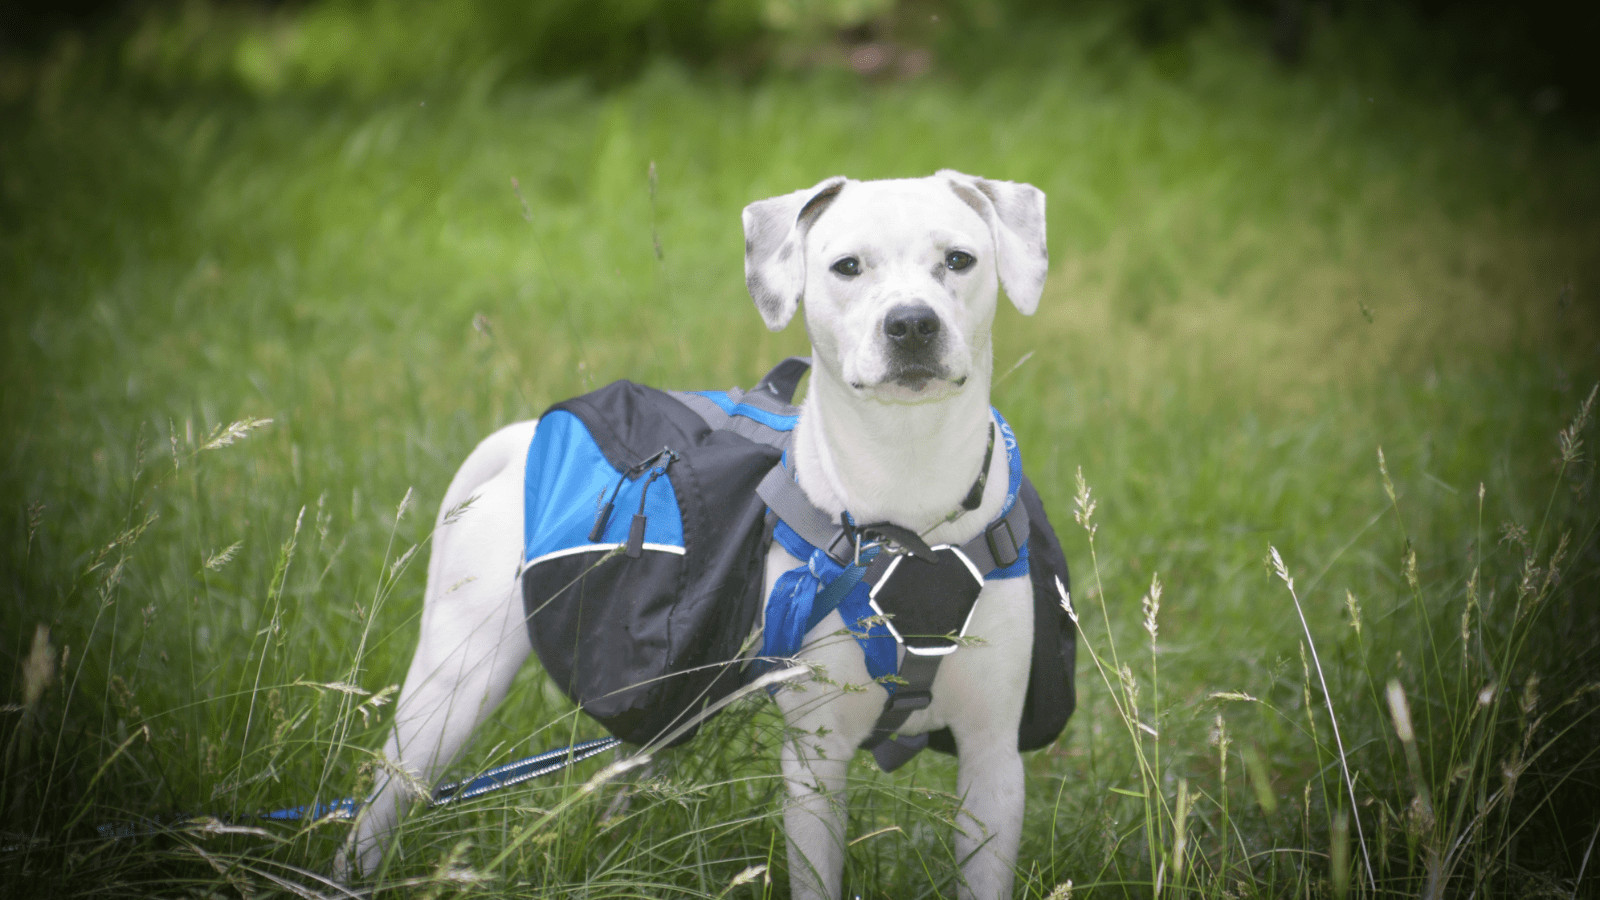 How To Train A Dog To Wear A Backpack